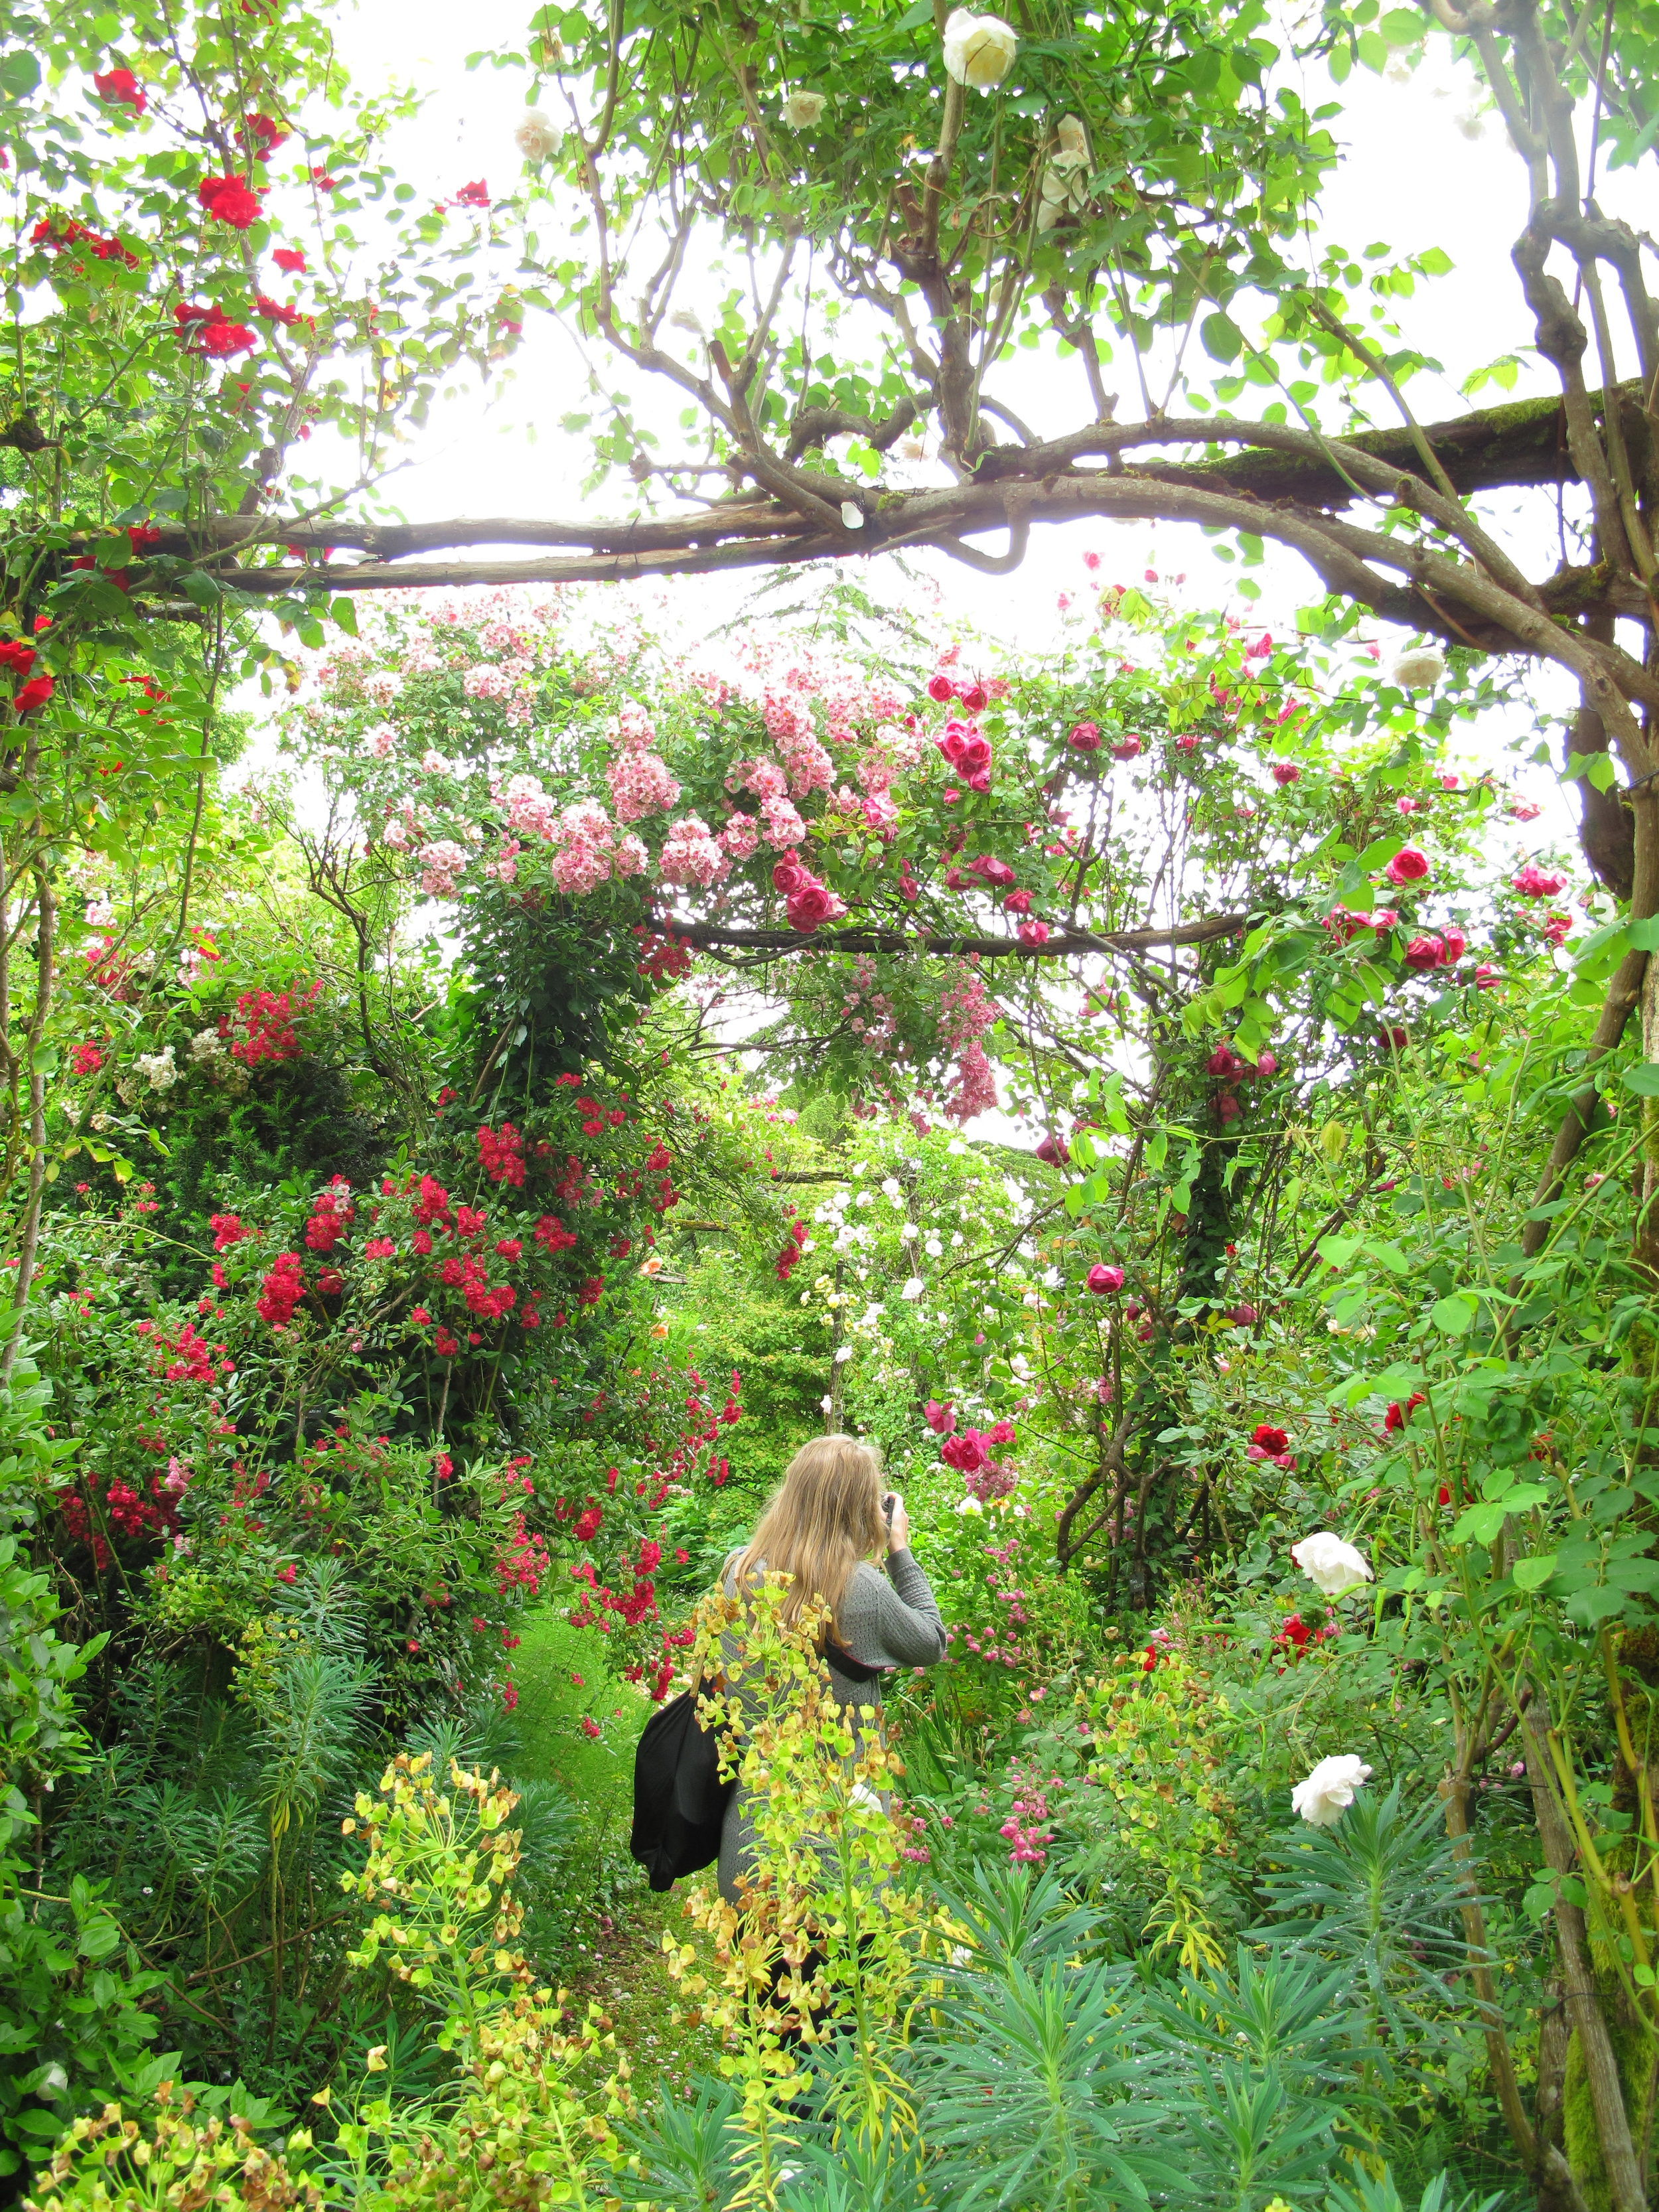 Lost in the roses of the Jardin de Boissonna